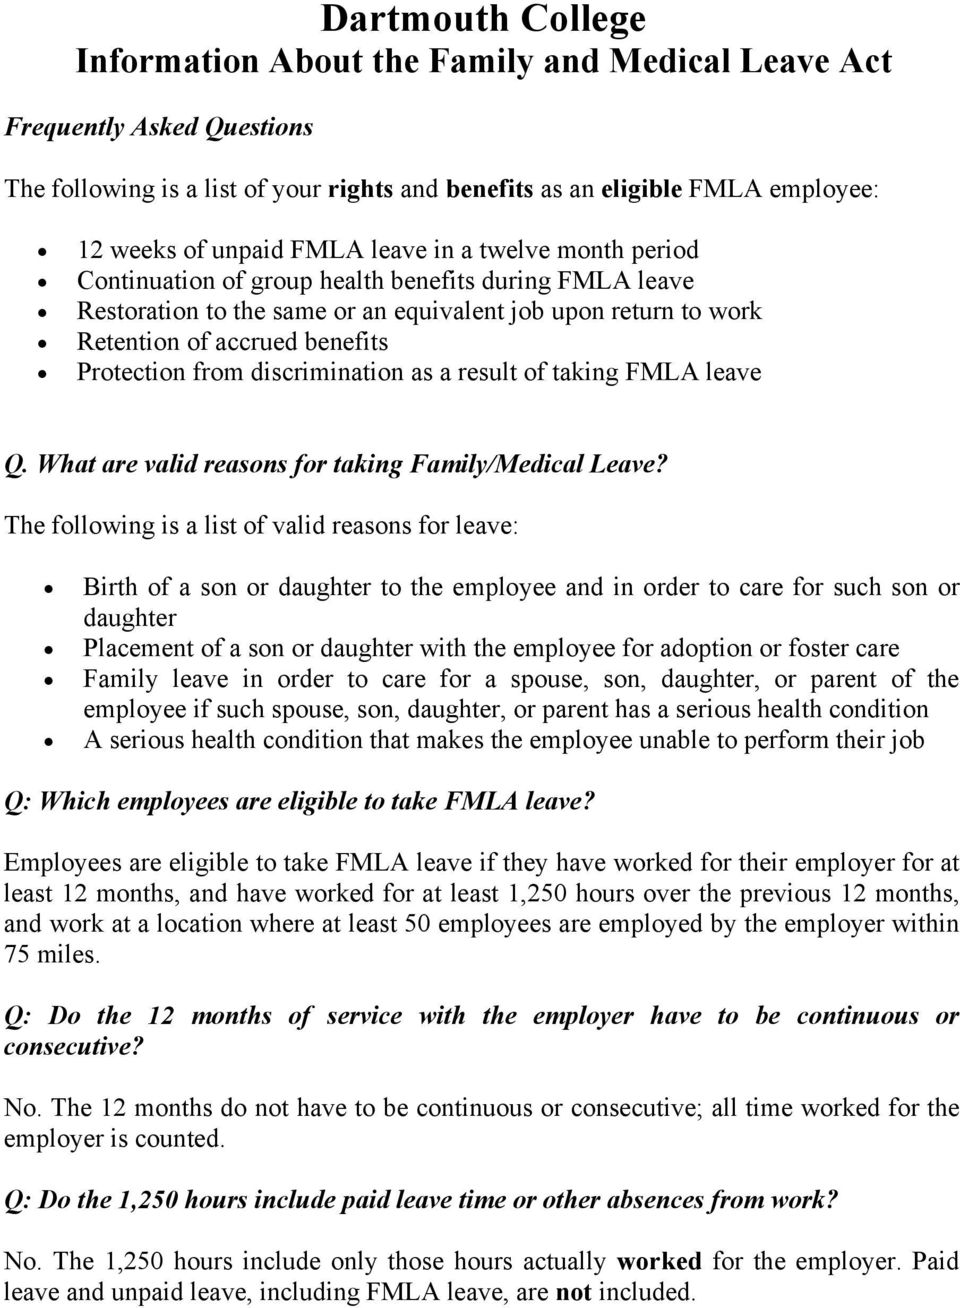 from discrimination as a result of taking FMLA leave Q. What are valid reasons for taking Family/Medical Leave?